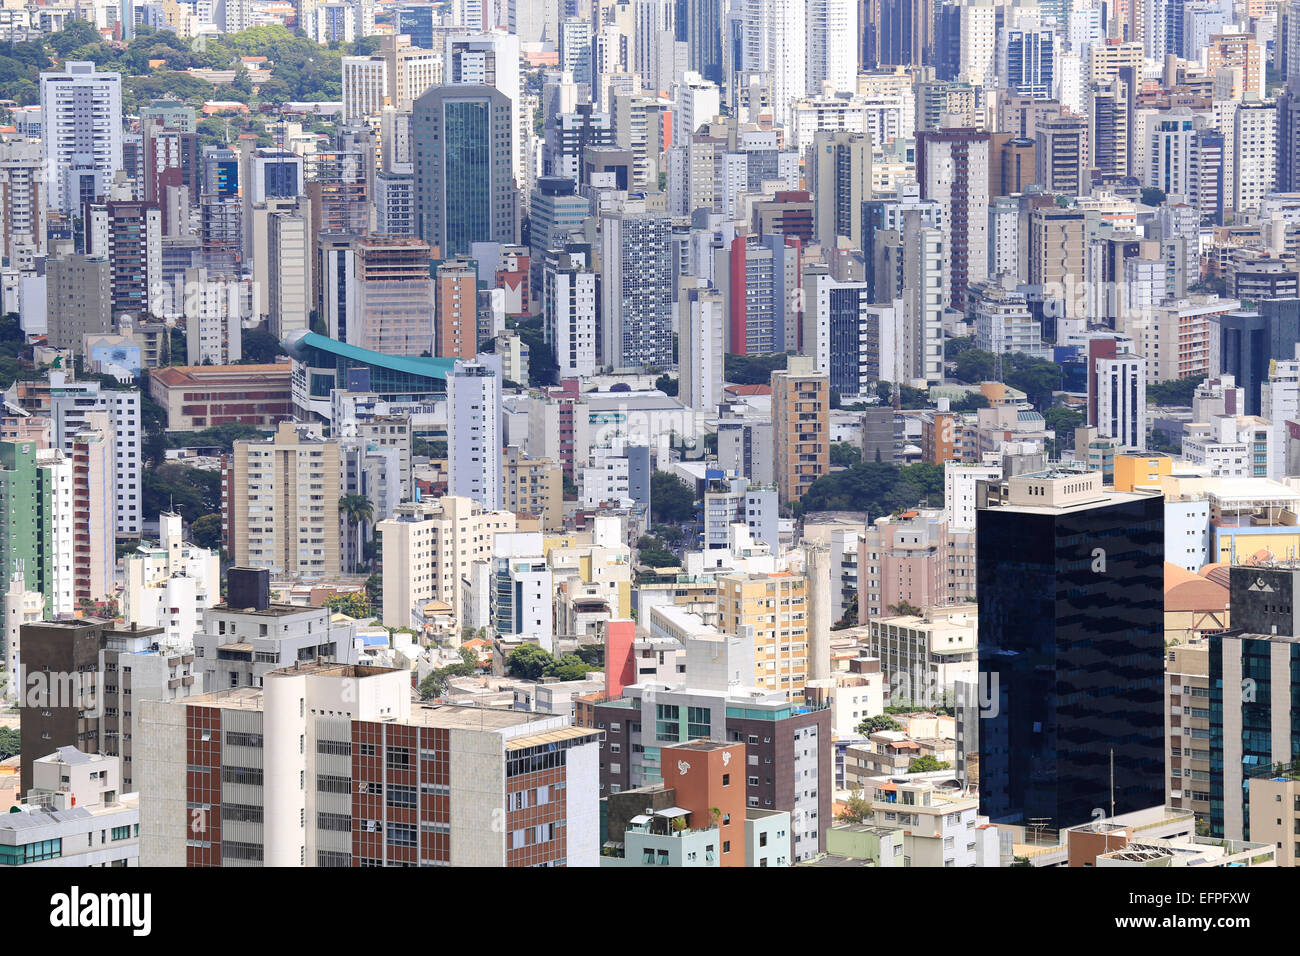 Apartment blocks in the city centre, Belo Horizonte, Minas Gerais, Brazil, South America - Stock Image